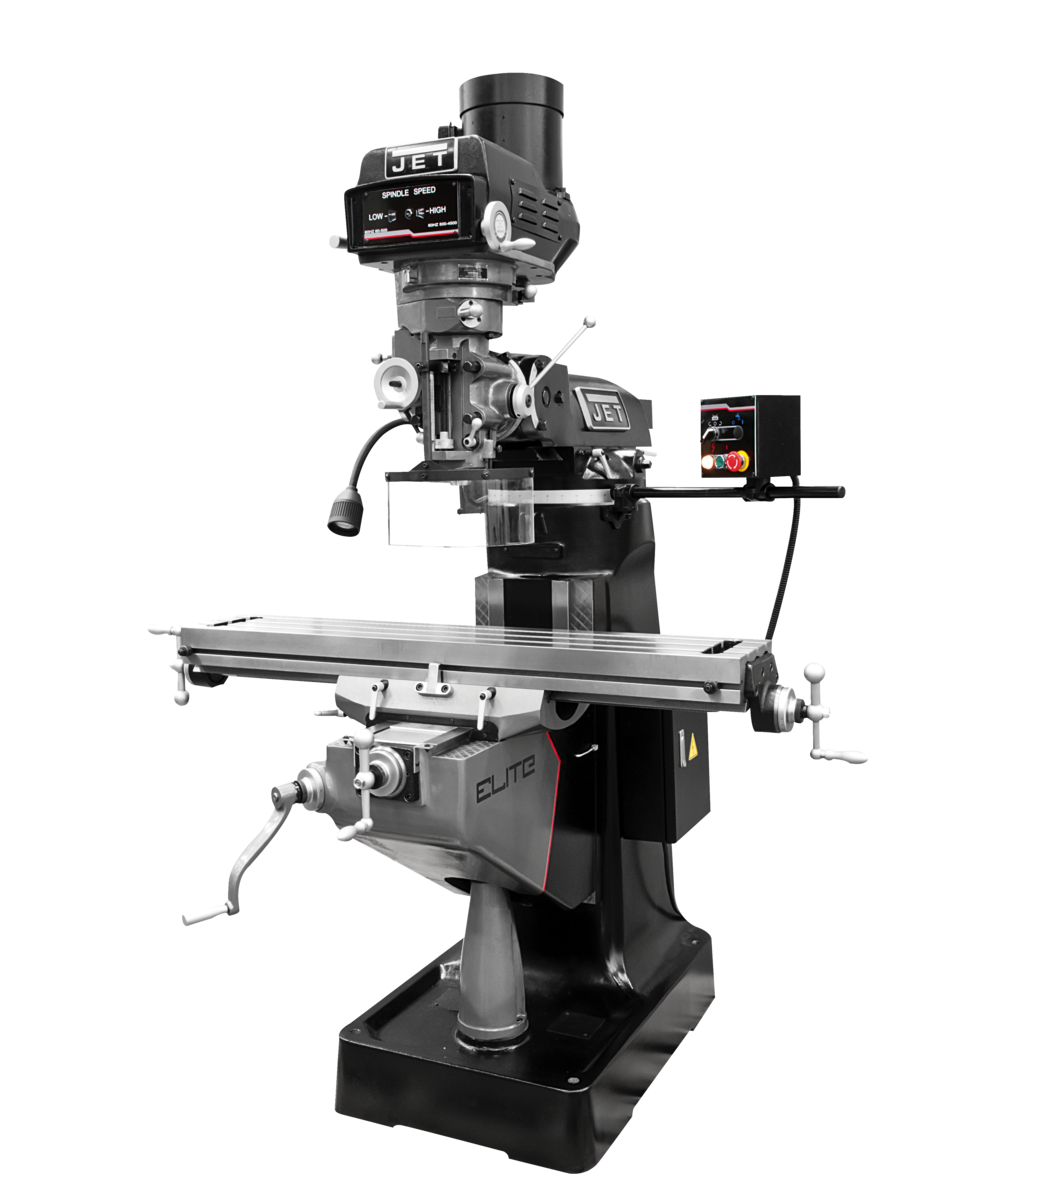 ETM-949 Mill with 3-Axis ACU-RITE 203  (Knee) DRO and X, Y, Z-Axis JET Powerfeeds and USA Made Air Draw Bar